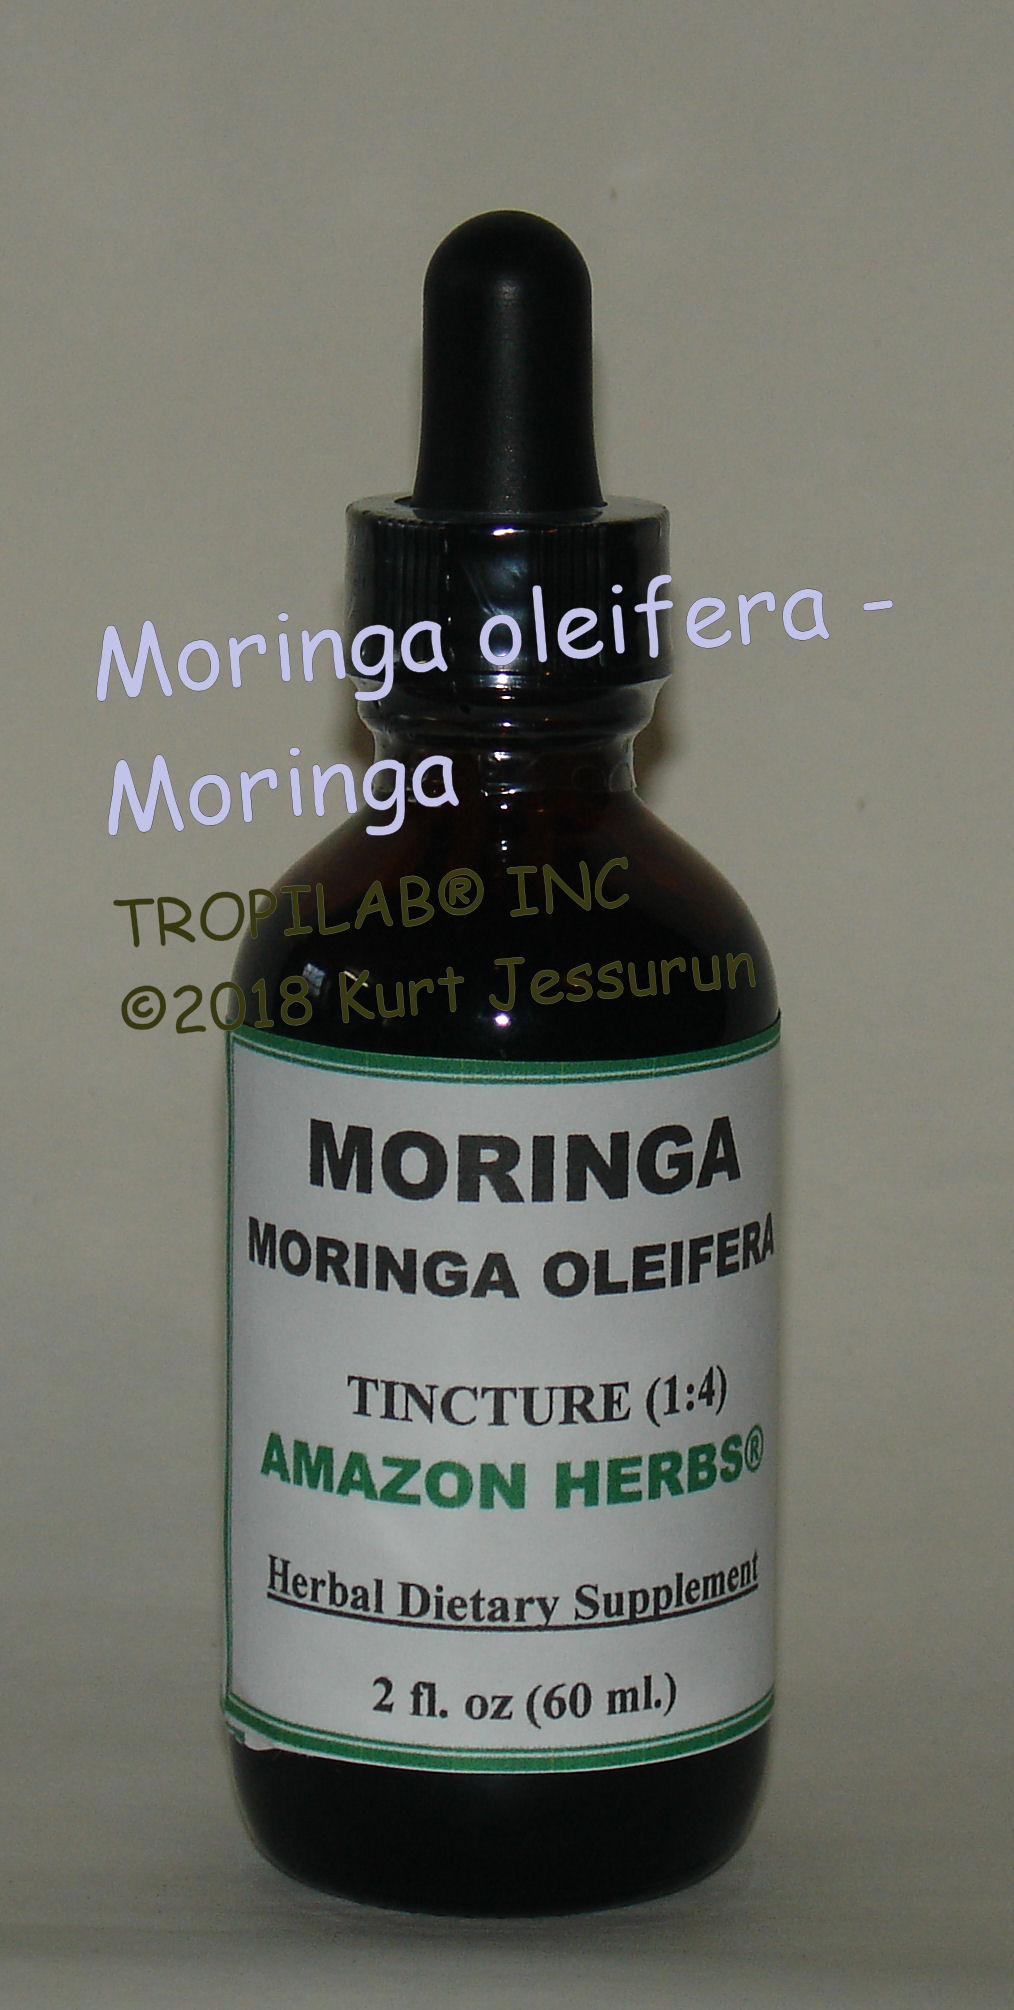 Moringa oleifera tincture - TROPILAB, many medicinal applications such as 